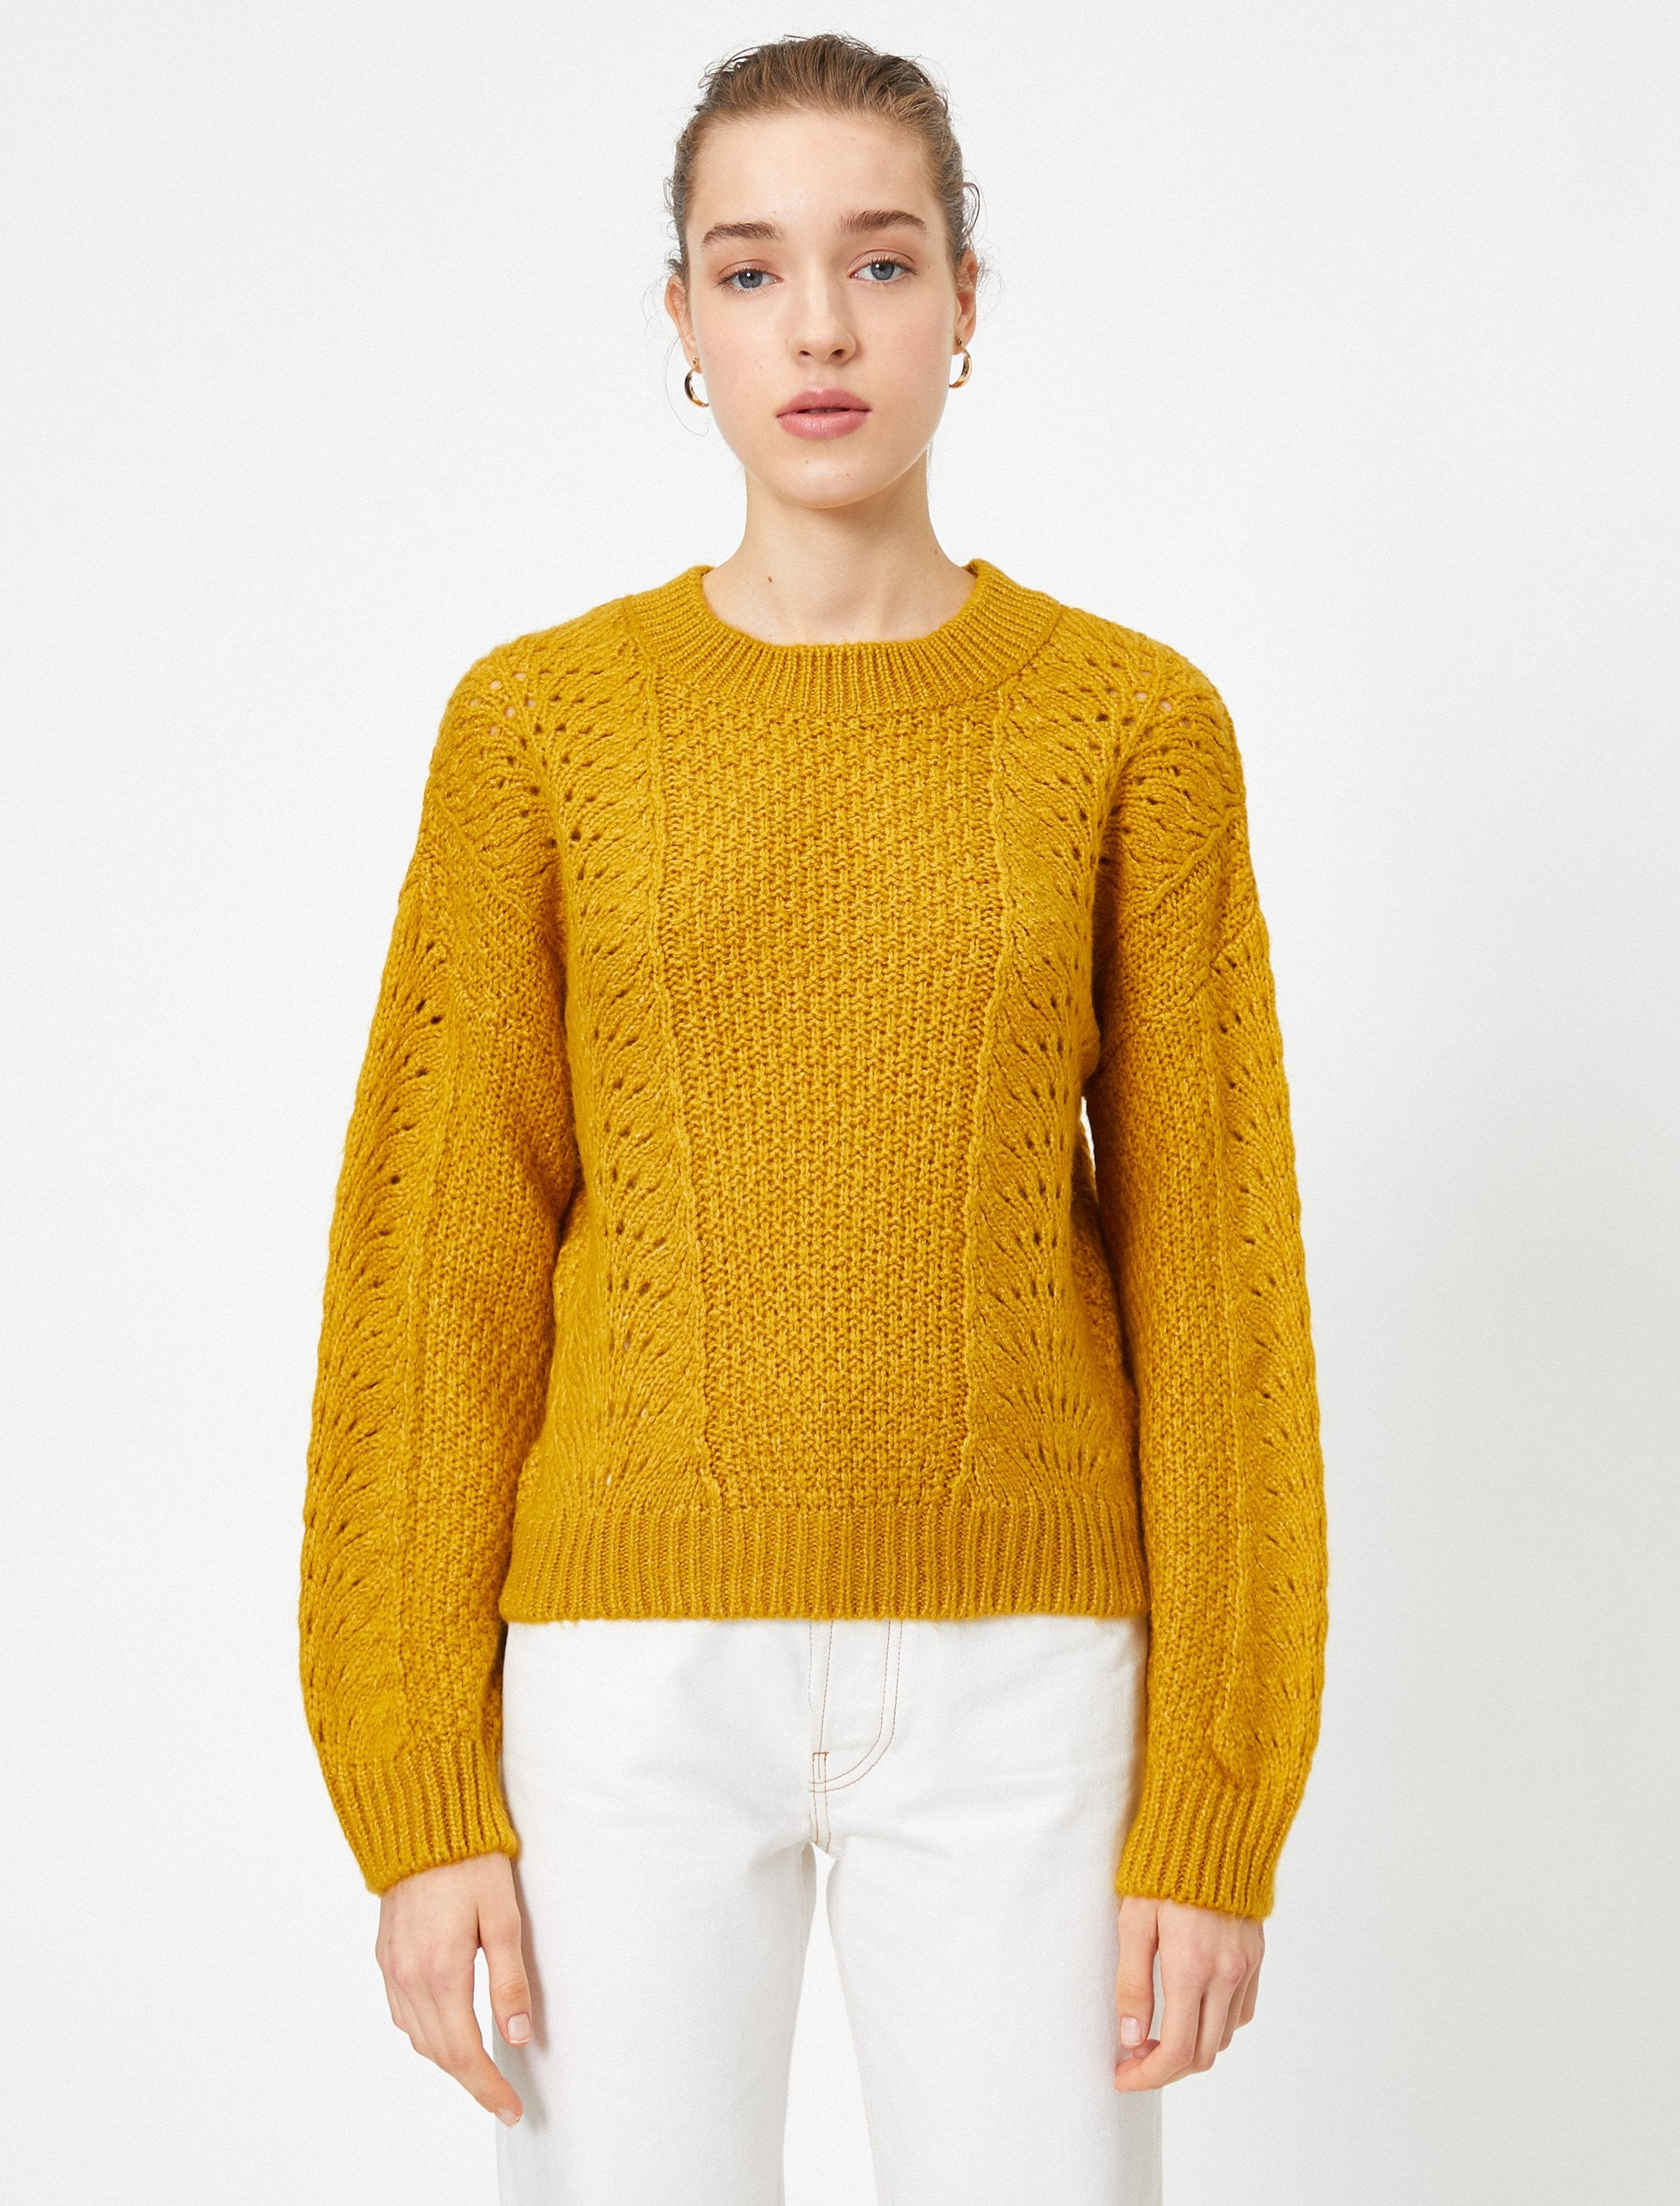 Crew Neck Pointelle Sweater in Mustard